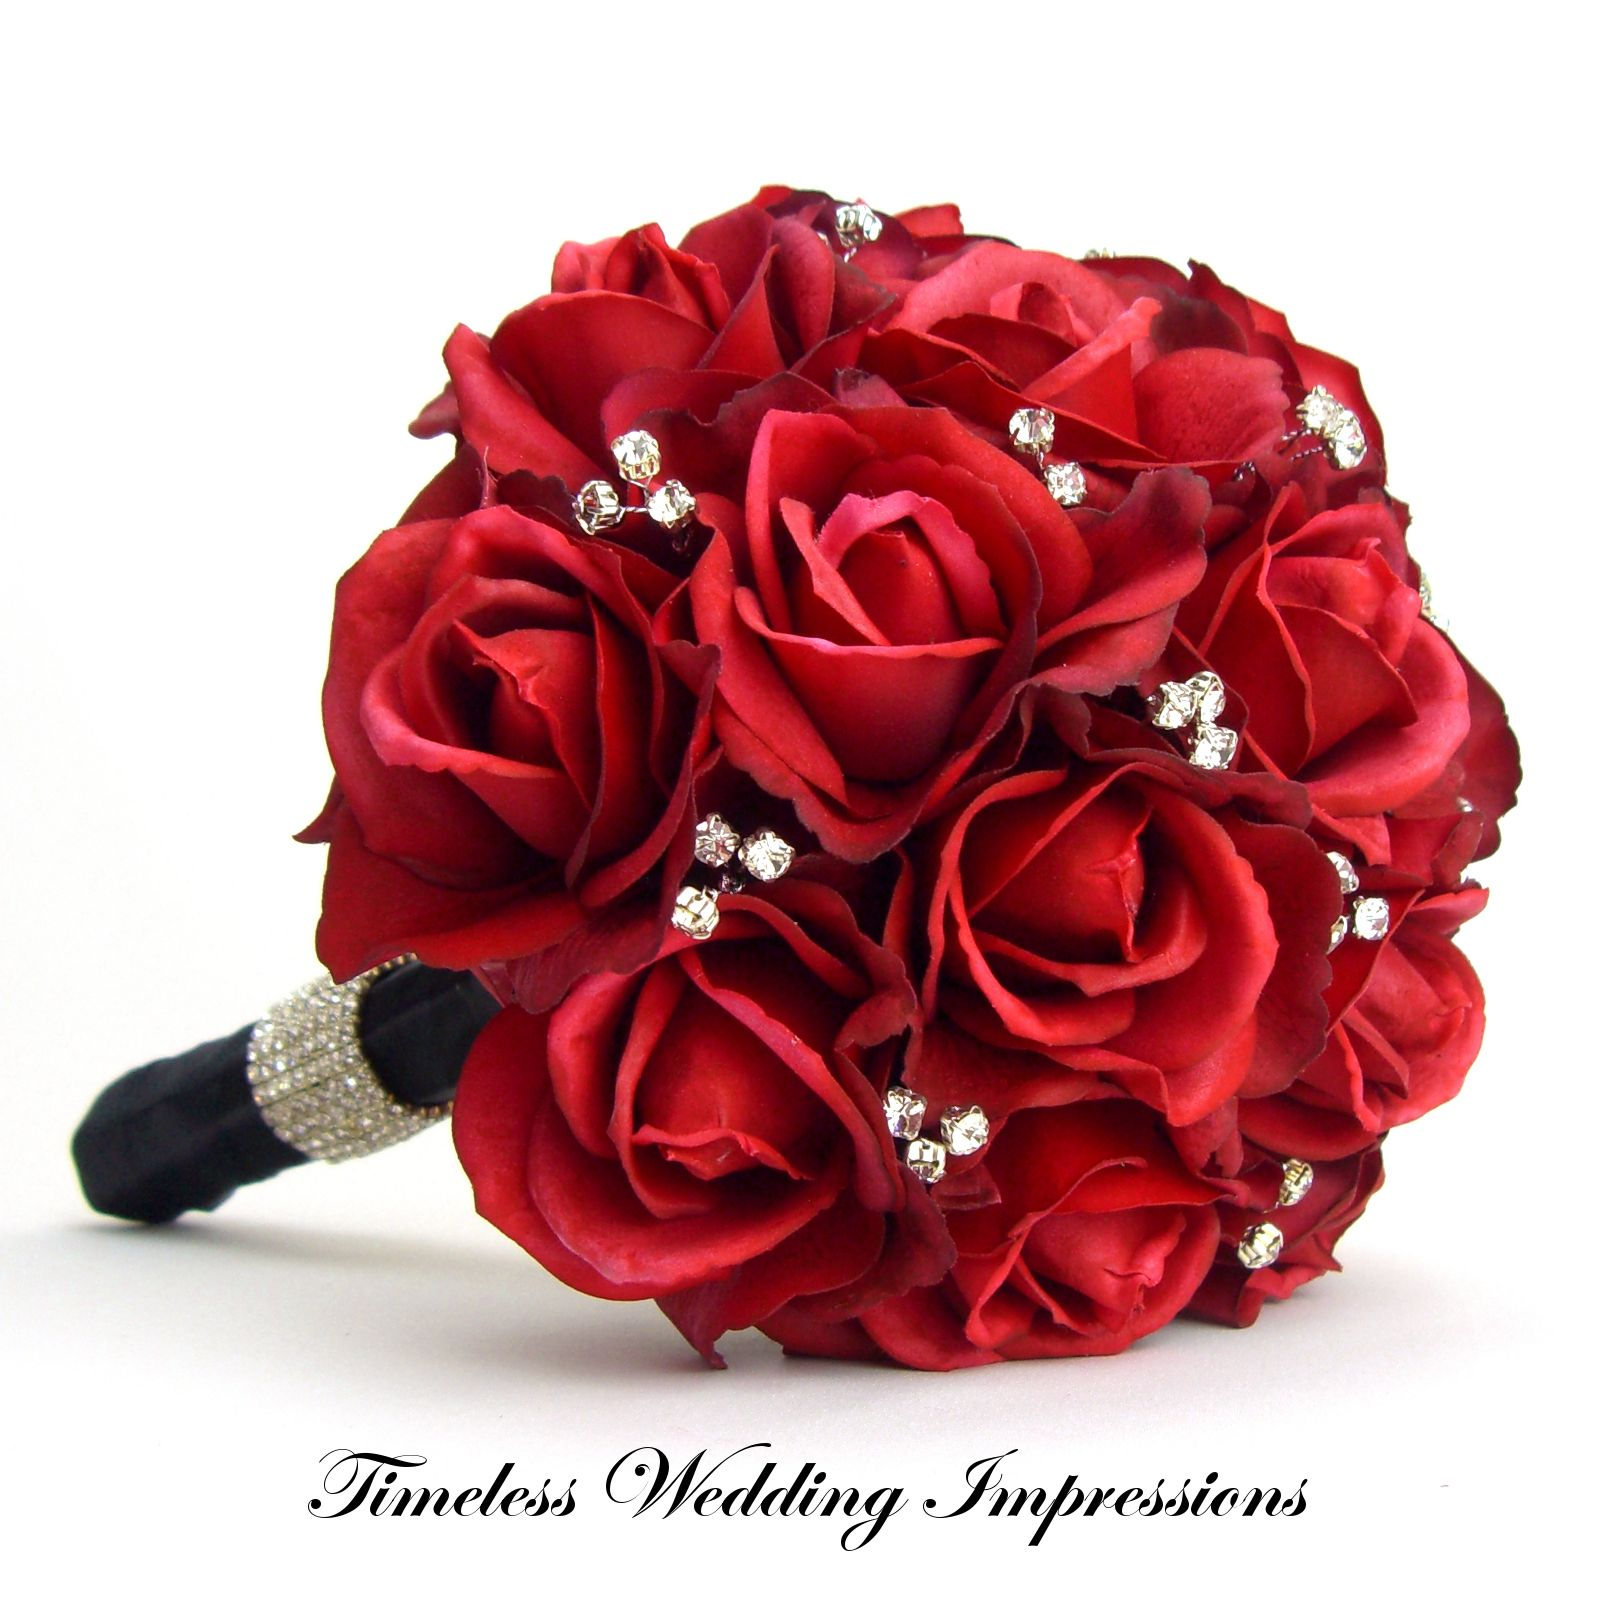 Rose Wedding Bouquets Red Rose Bridal Bouquet Real Touch Bling